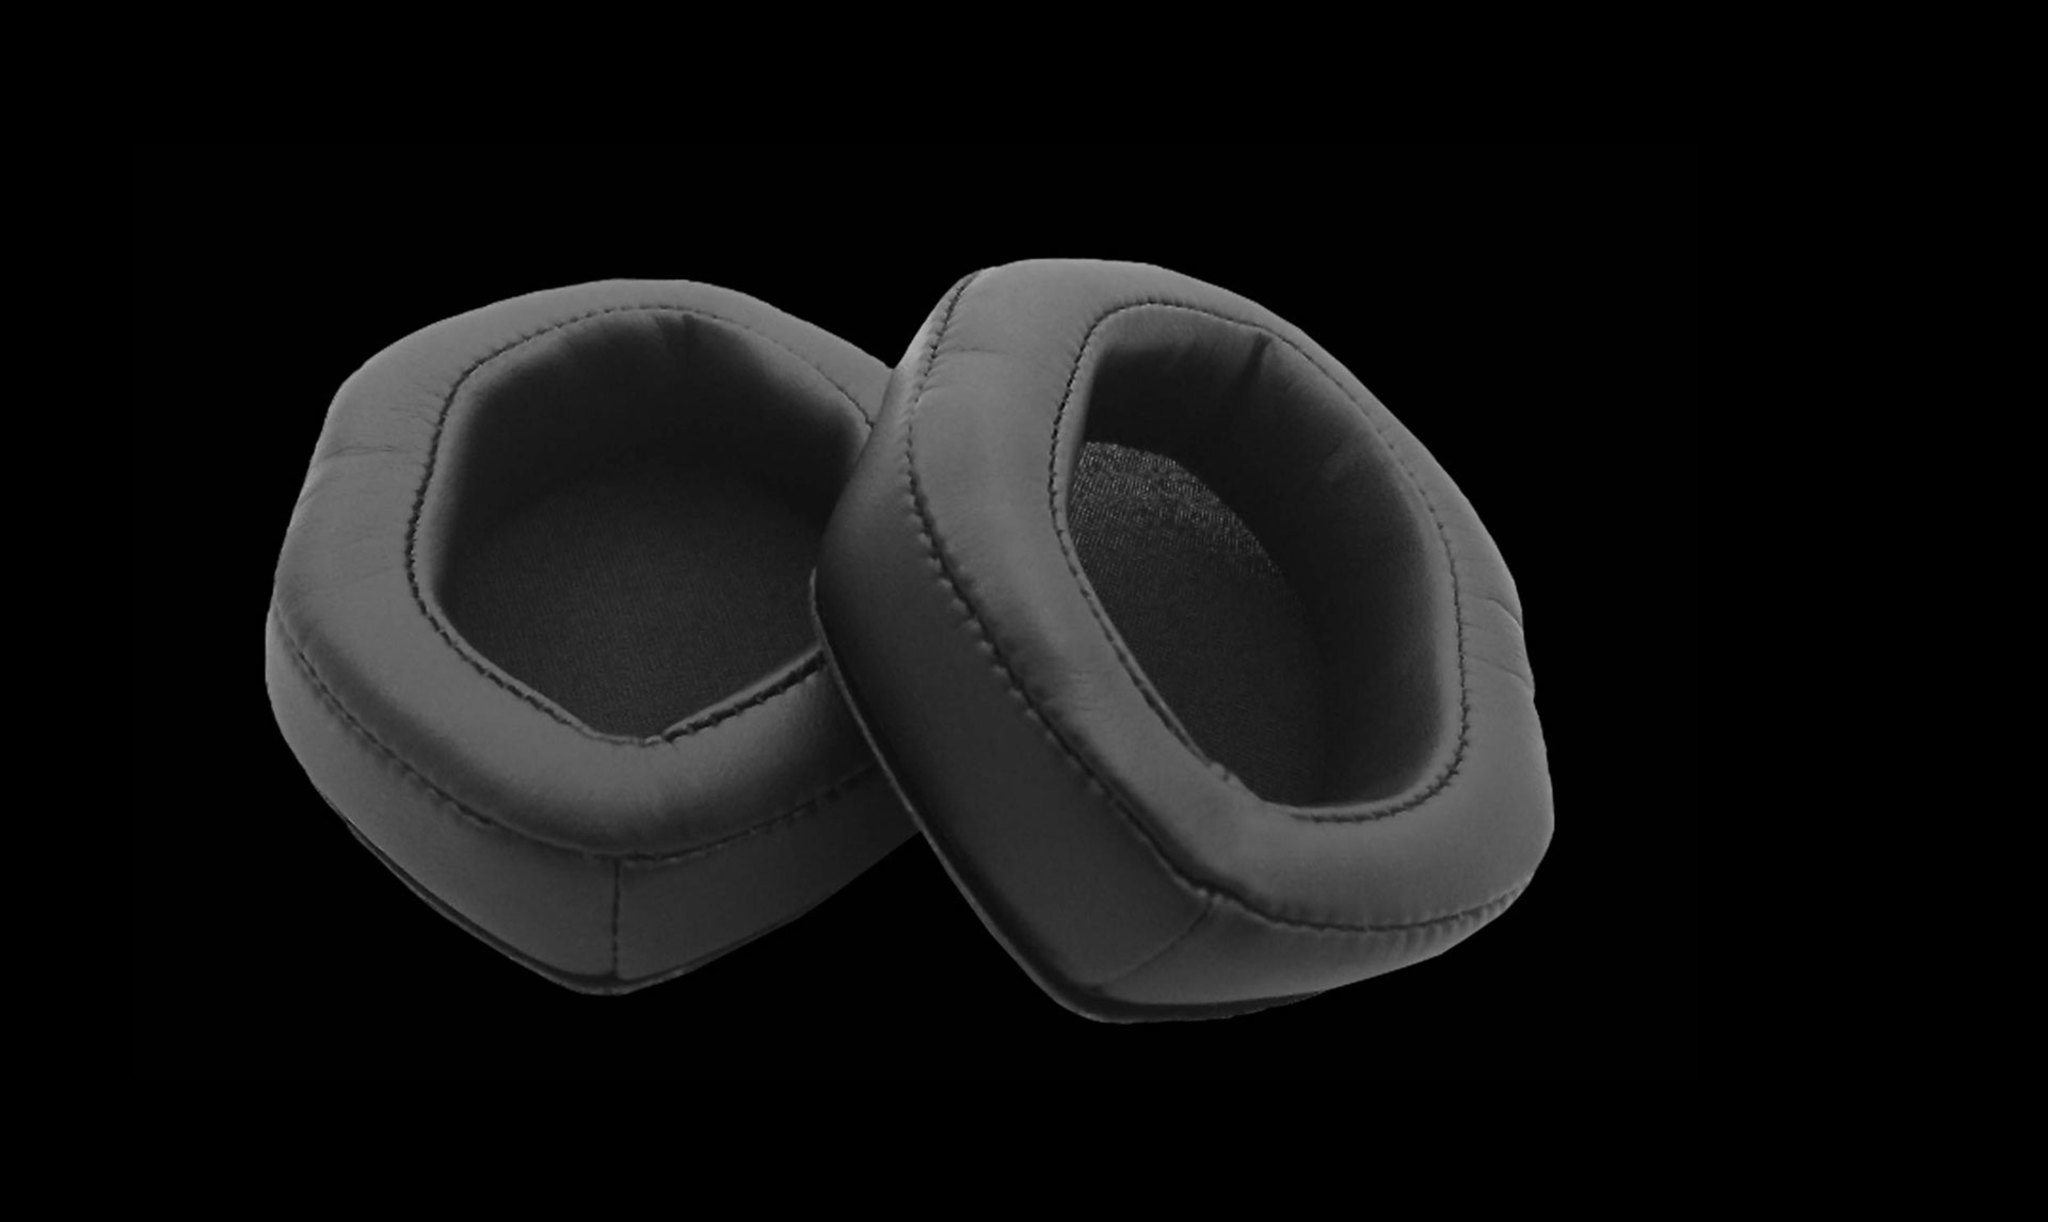 XL Extra Large Cushions for Over-Ear Headphones